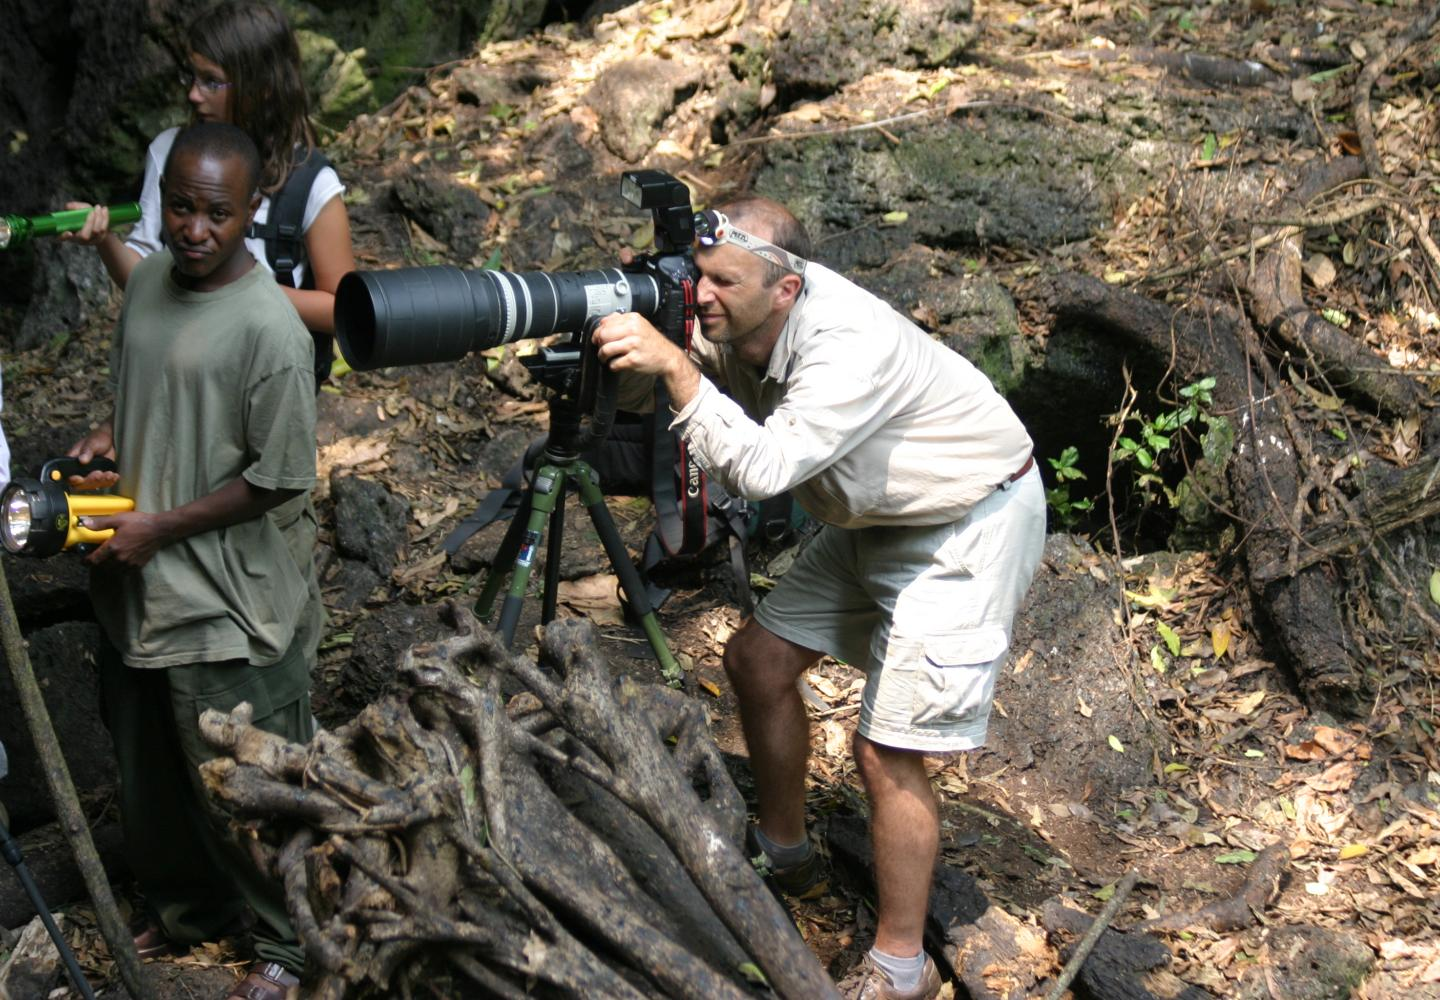 Fotographing in the bat's cave (Queen Elizabeth NP, Uganda)